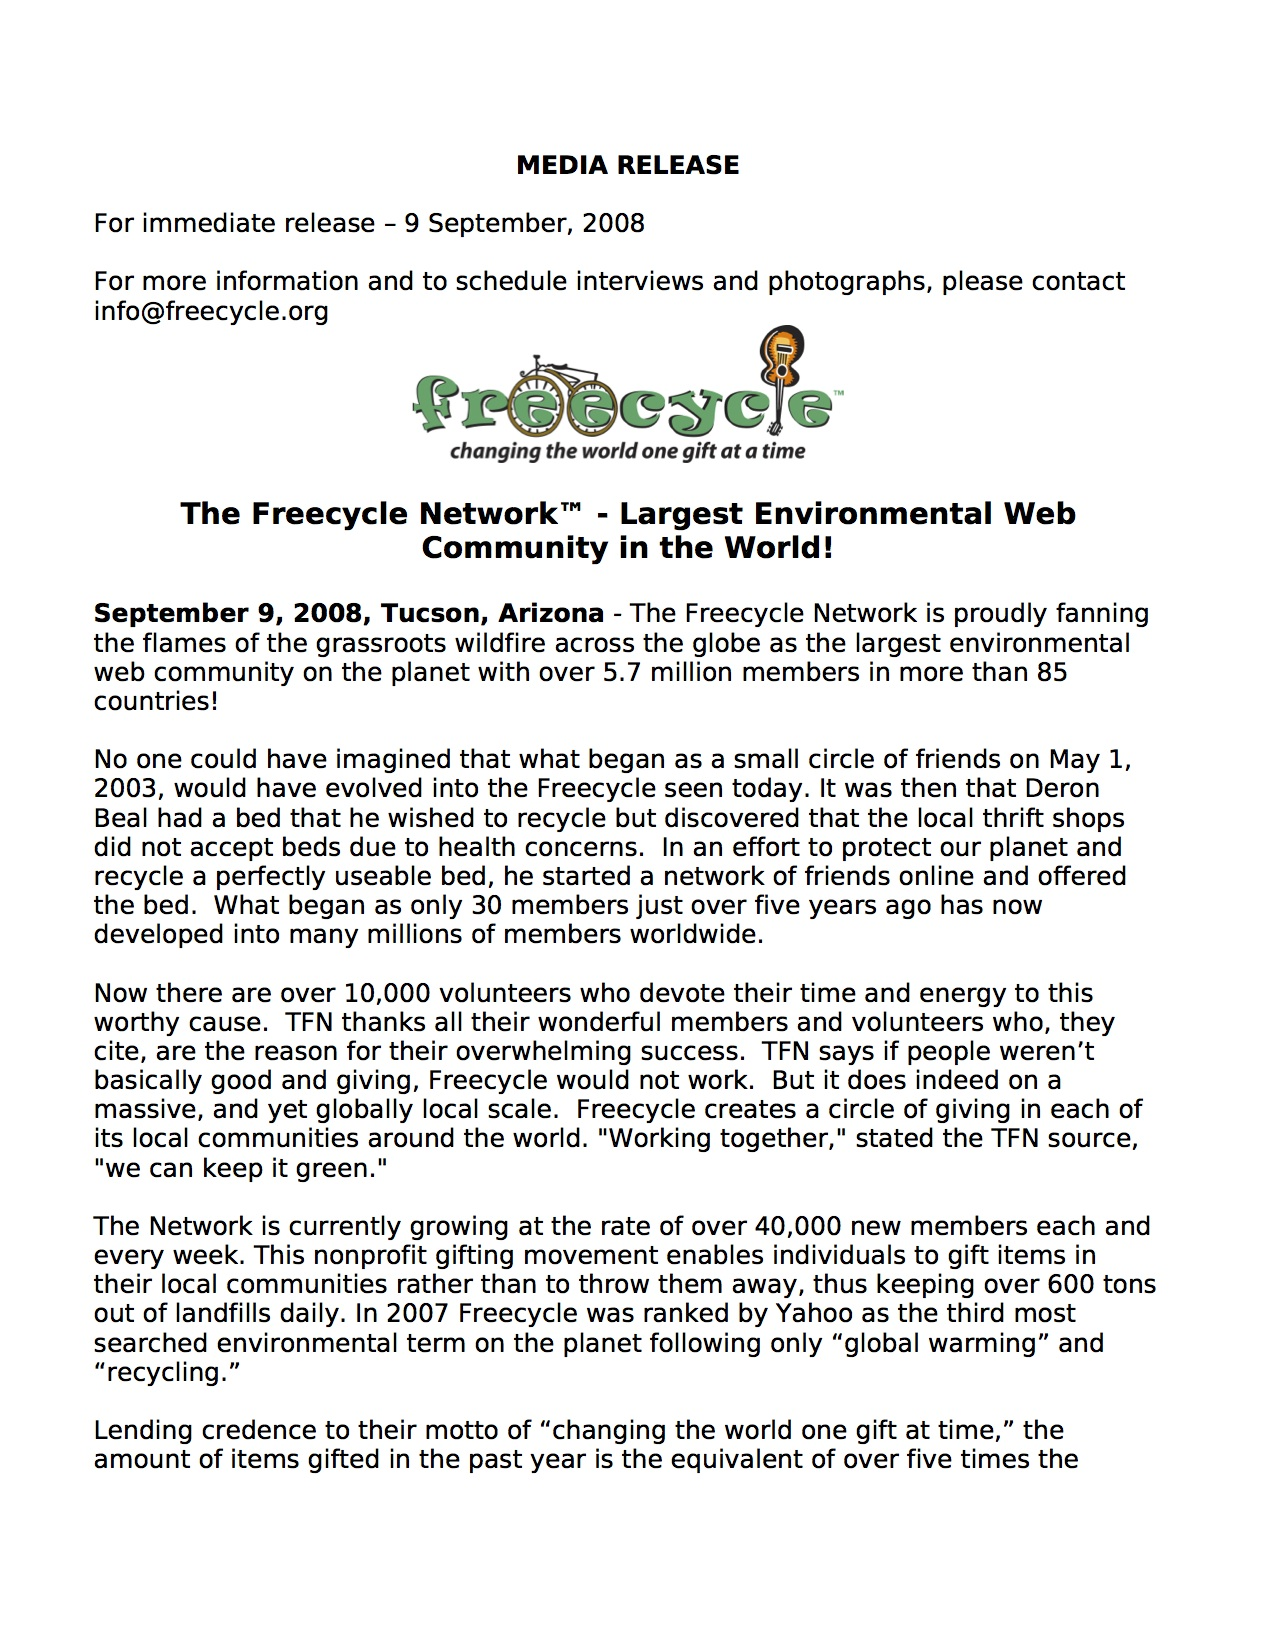 08-09-09 Freecycle press release.jpg